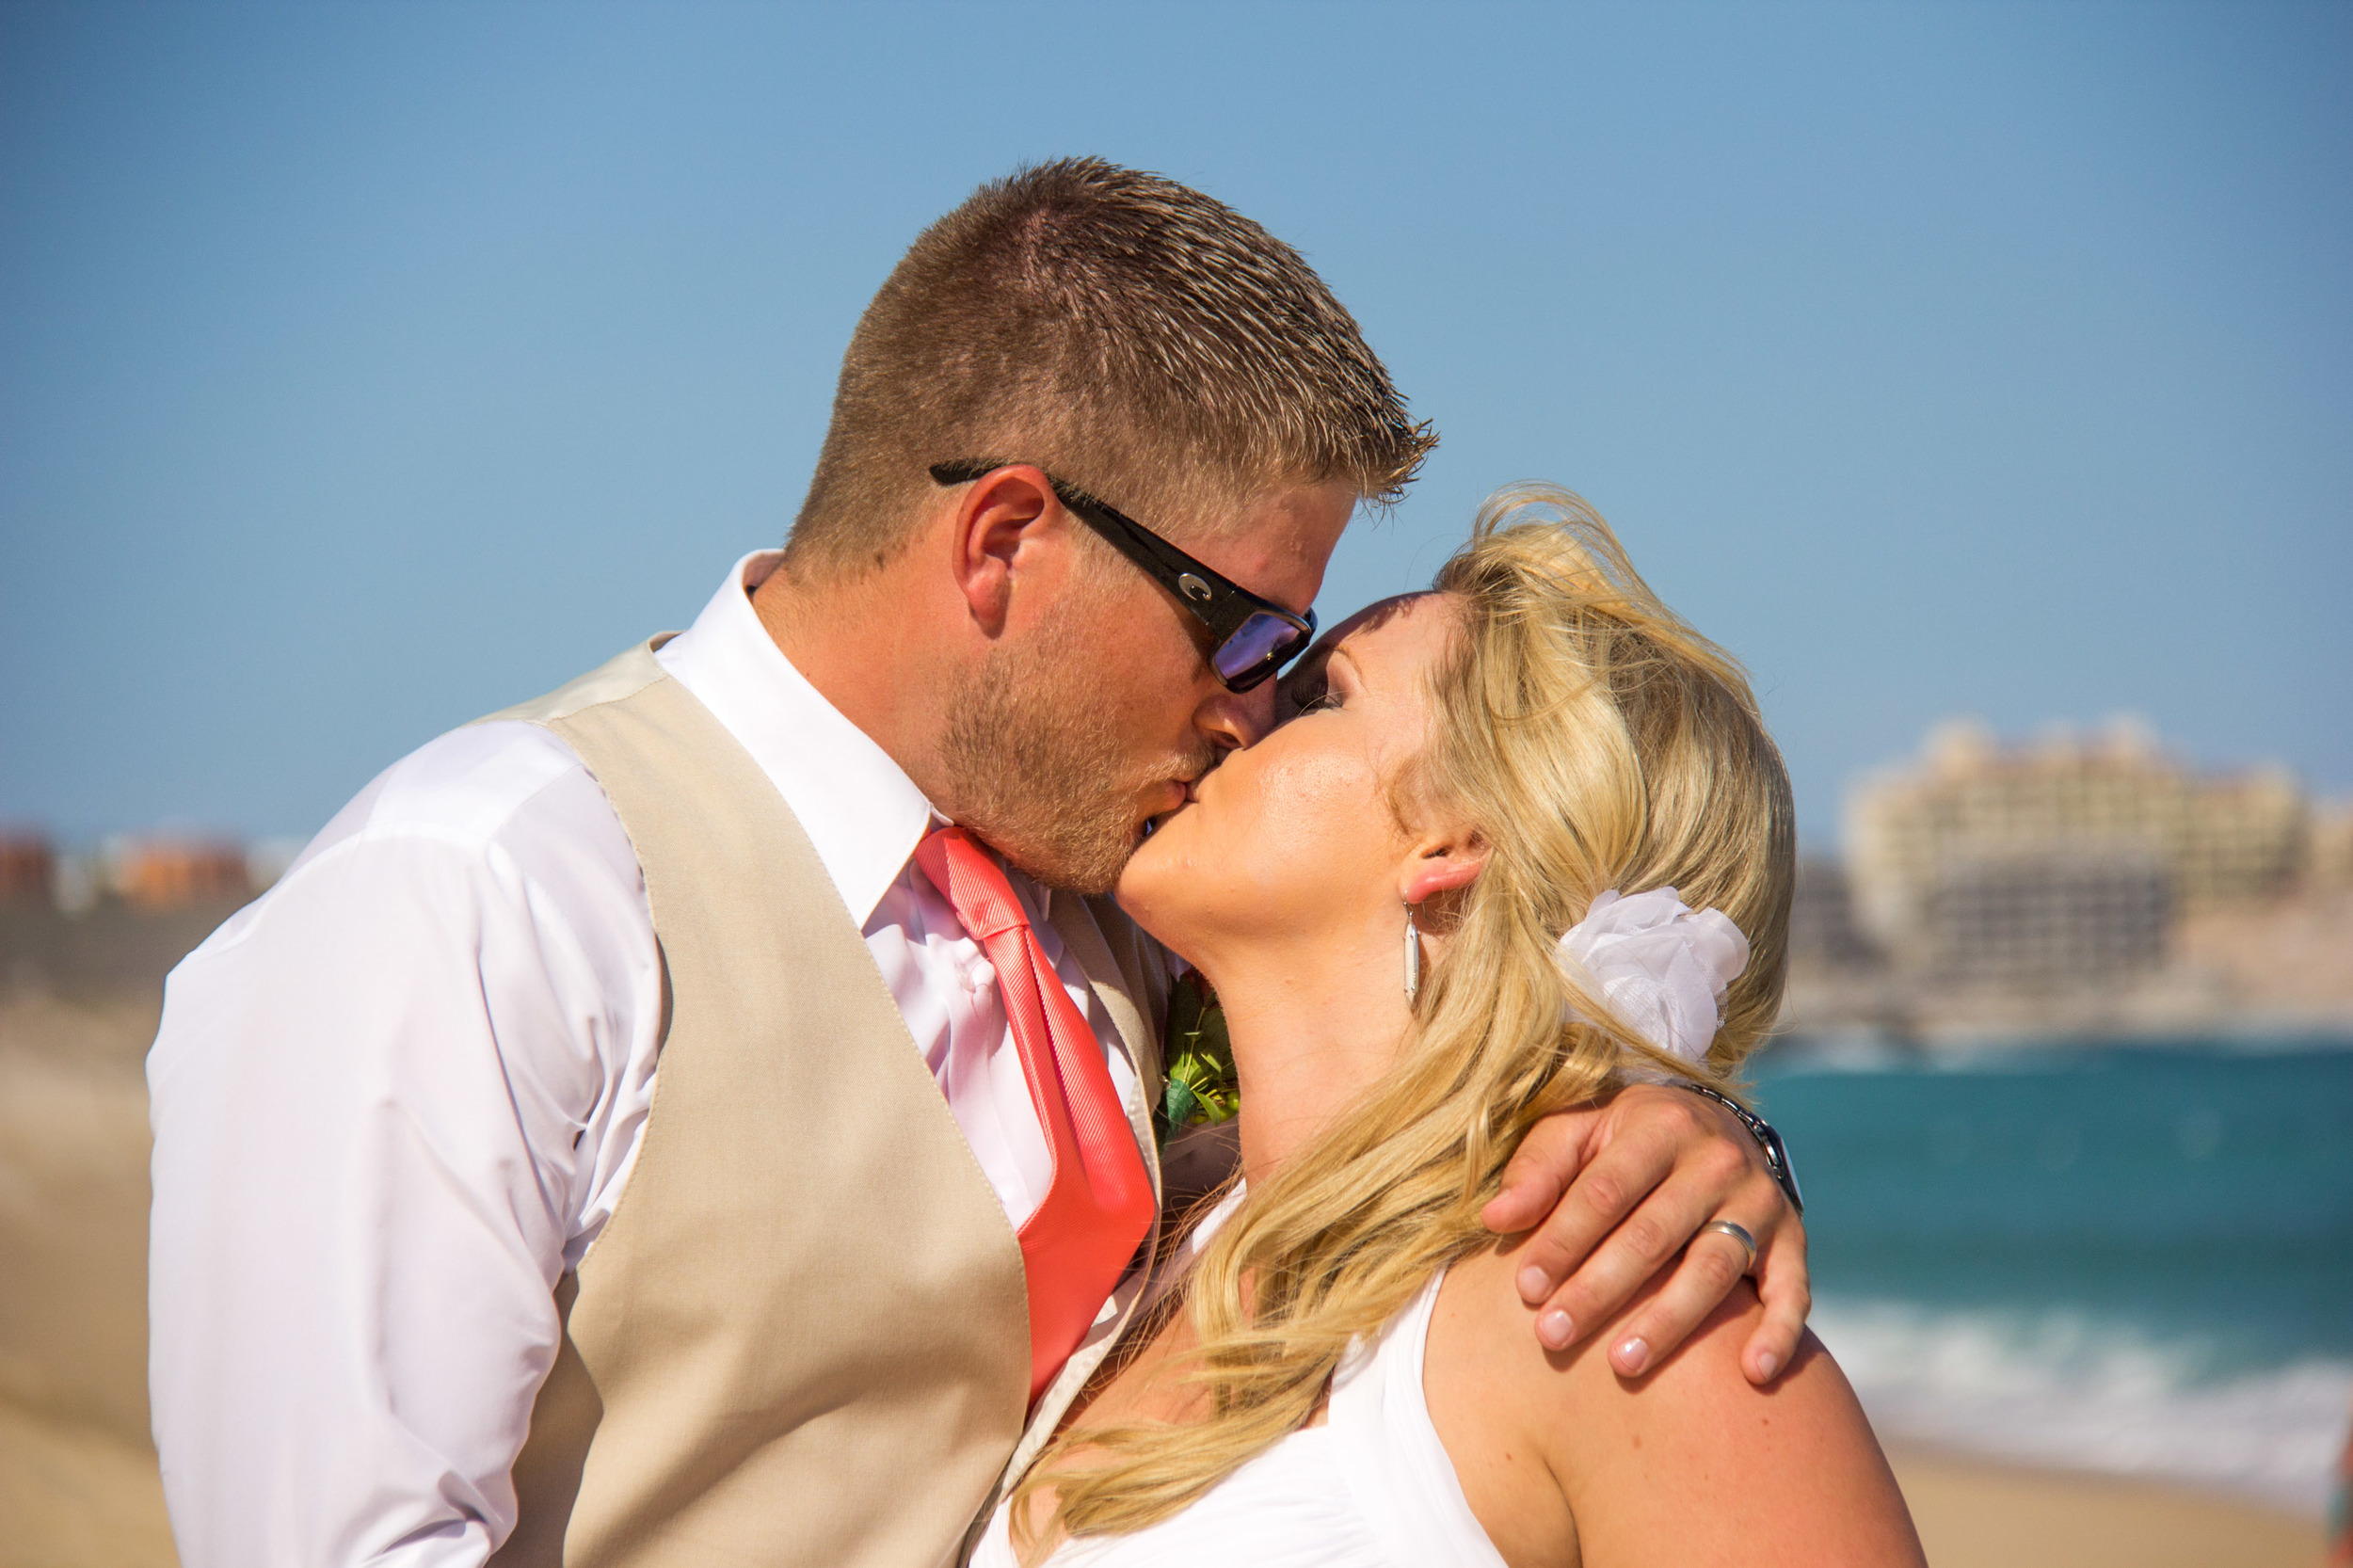 LangfordWeddingCabo2015-0464.jpg